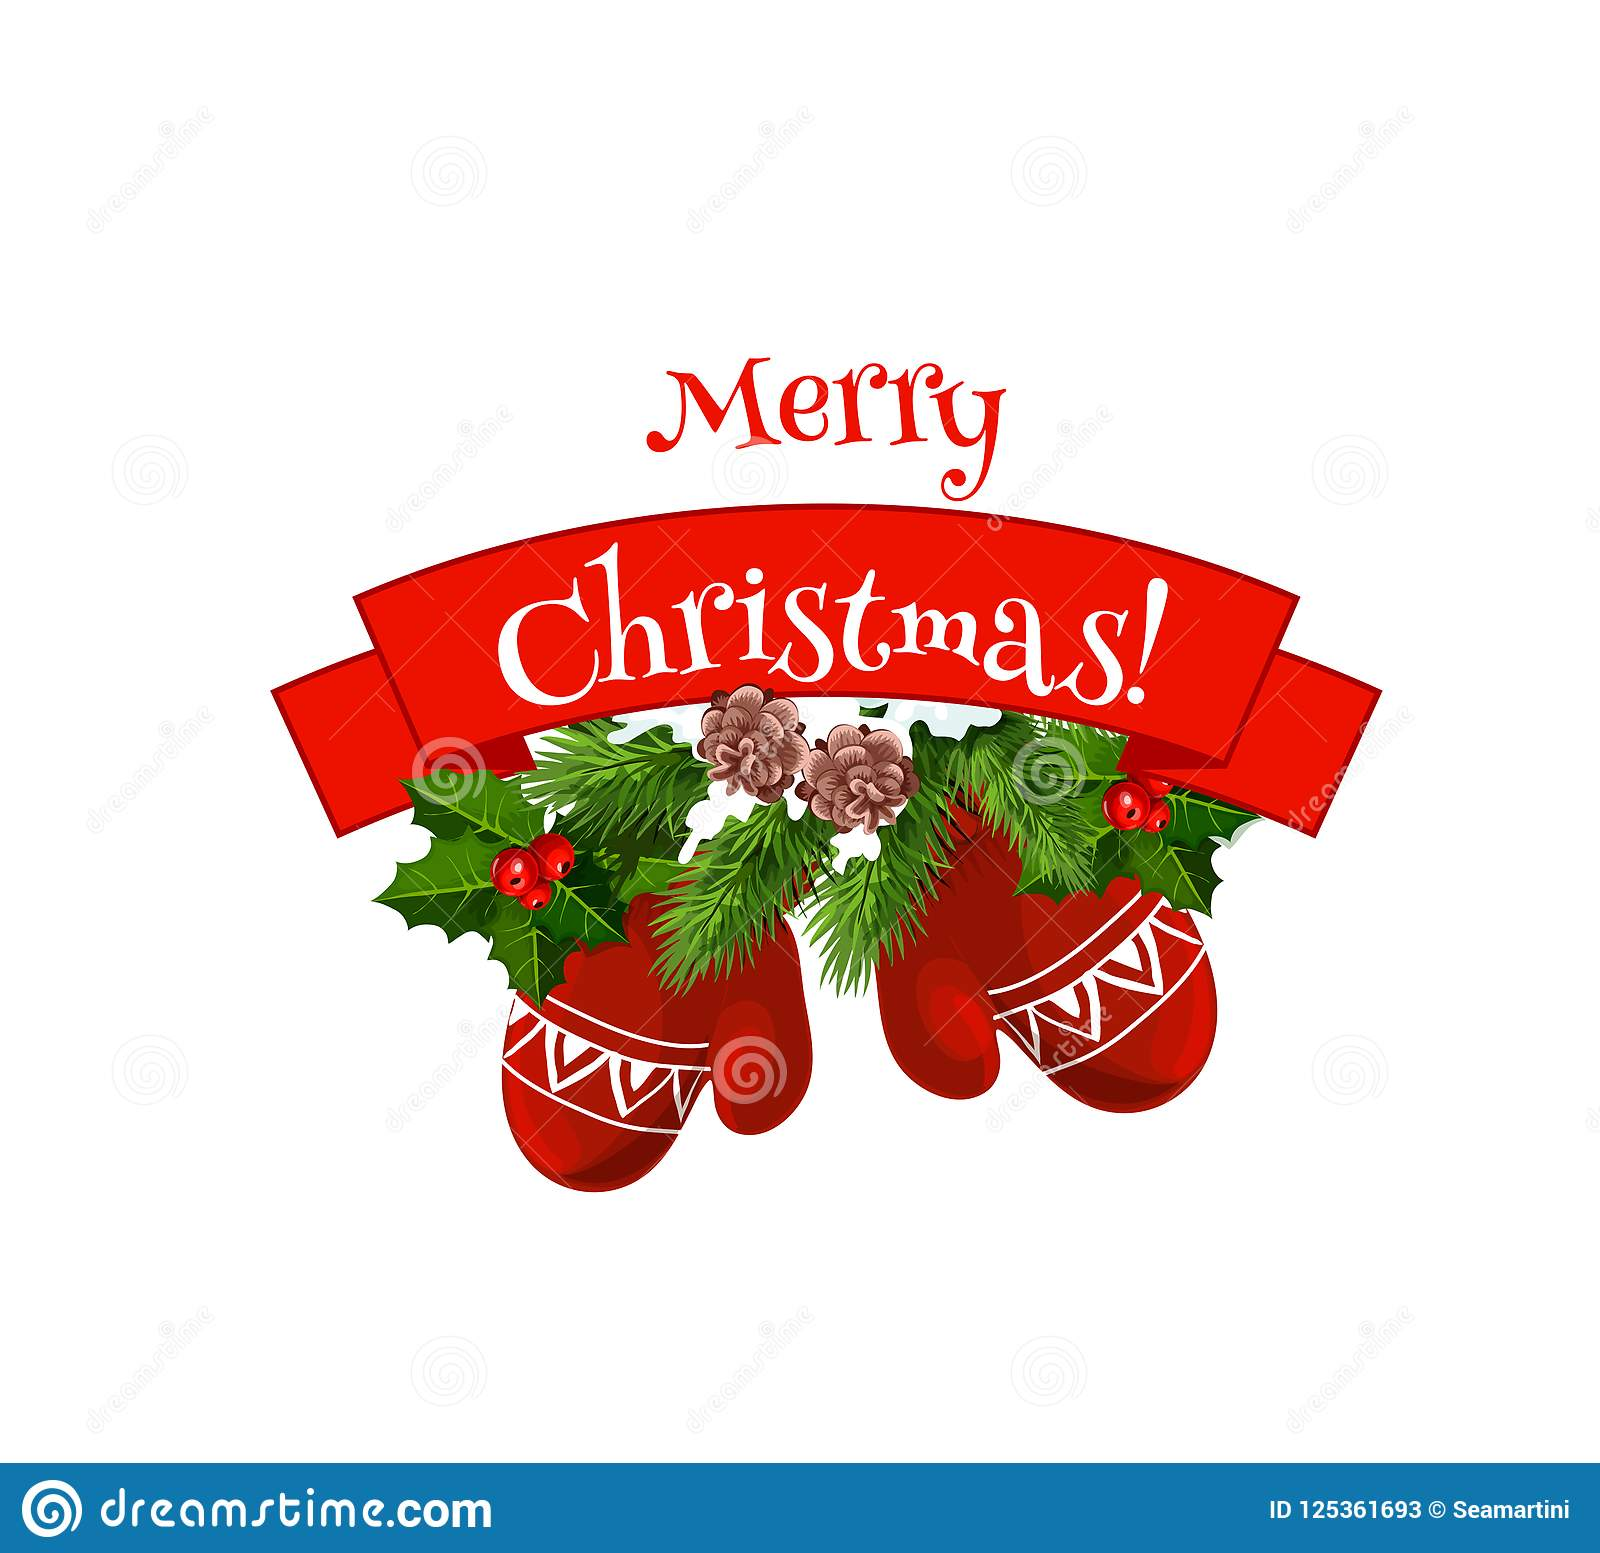 merry christmas mittens on wreath vector icon - Christmas Mittens